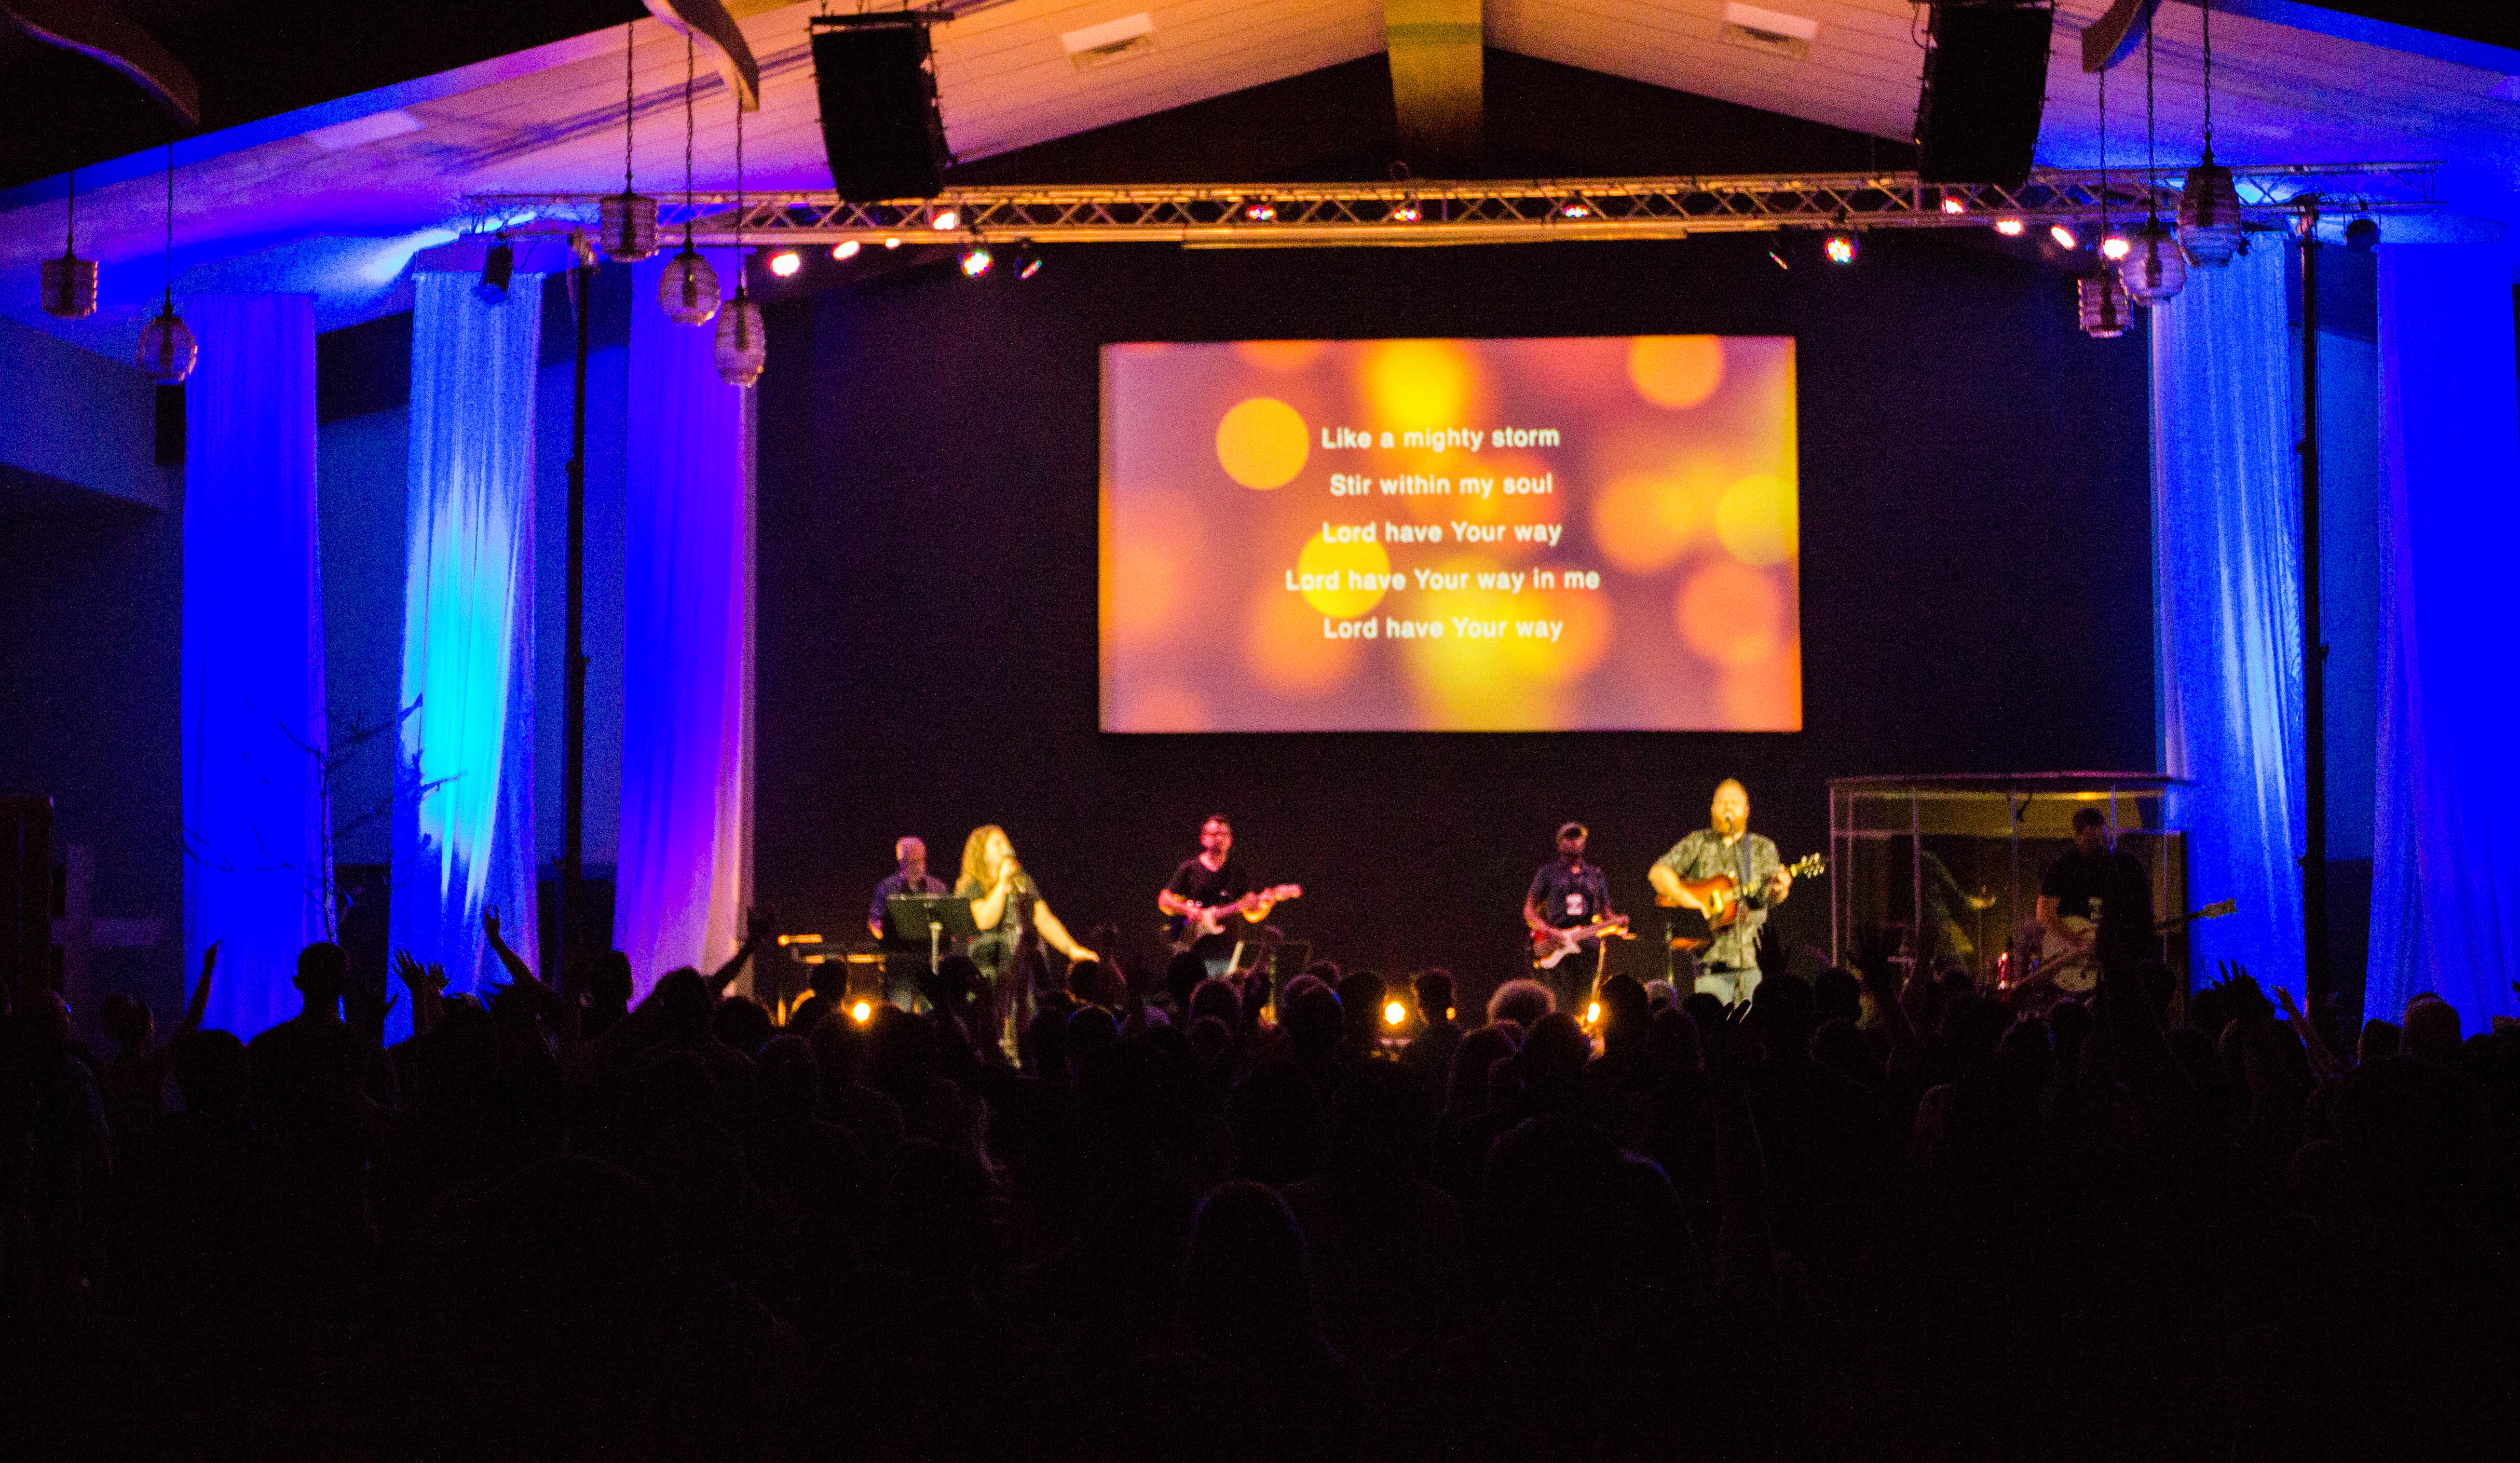 Inspire-worship-missions-conference-2019-live.jpg